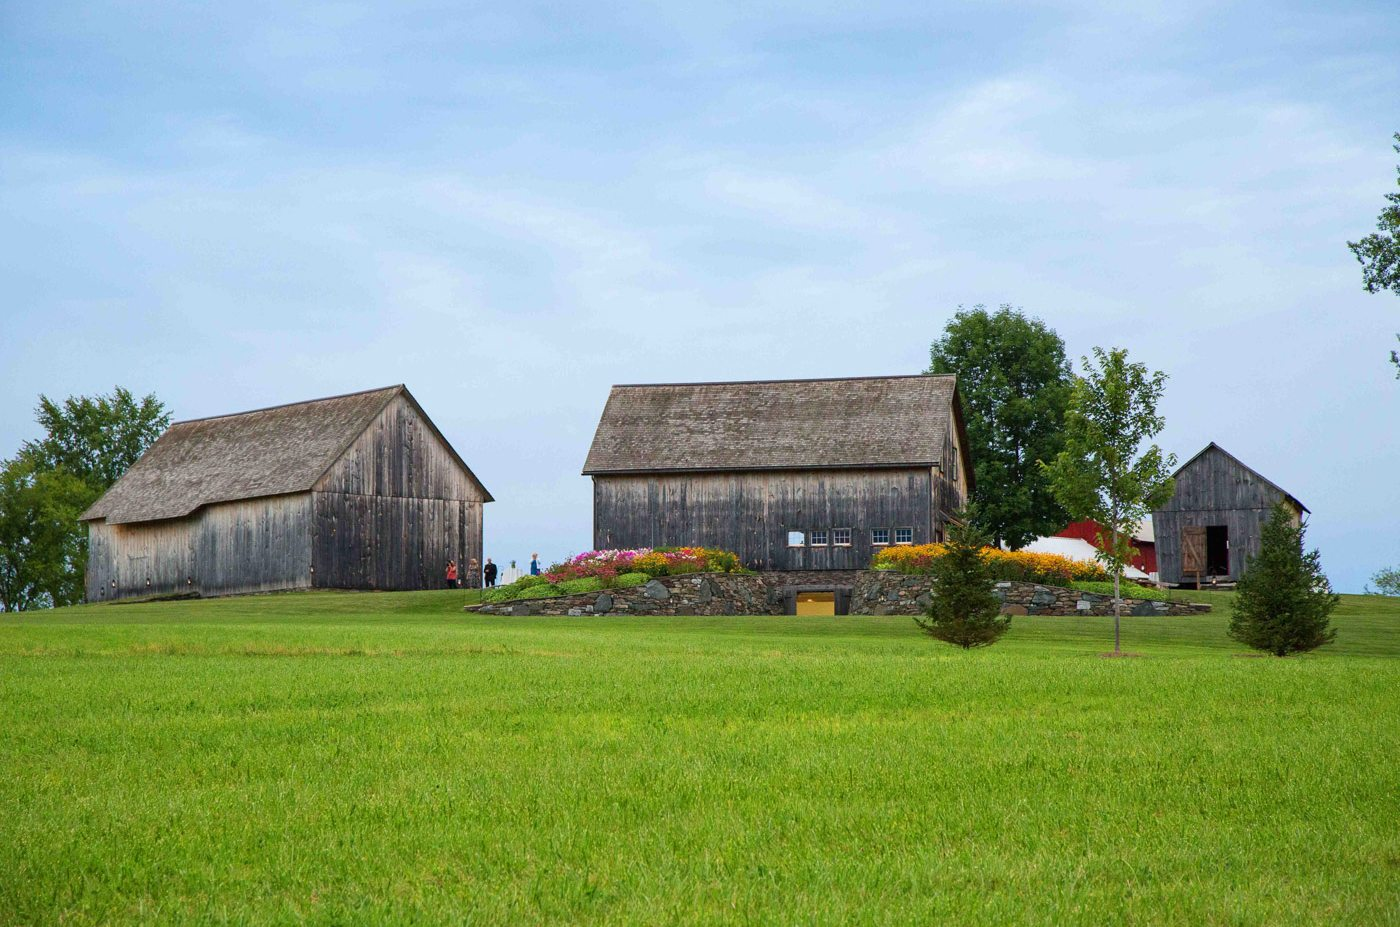 The grounds at Historic Barns of Nipmoose, Renee Merlino Photography